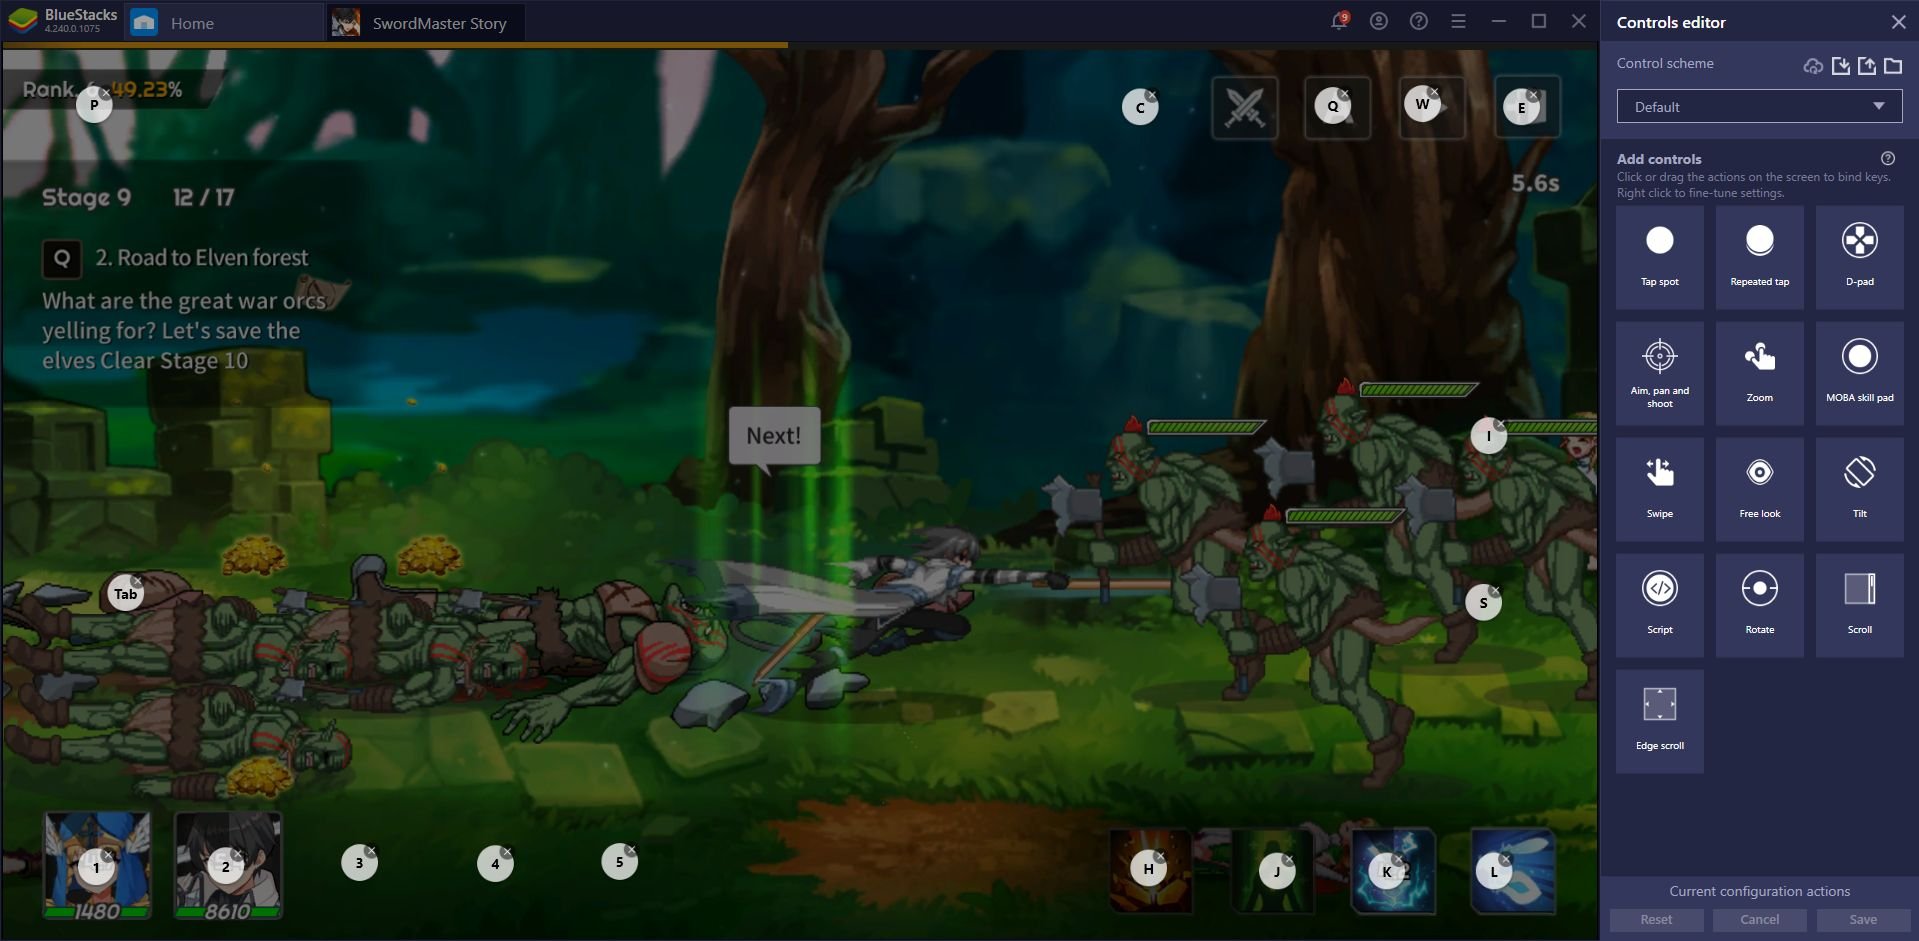 Sword Master Story – How To Enjoy This Gacha RPG Auto-Battler on PC